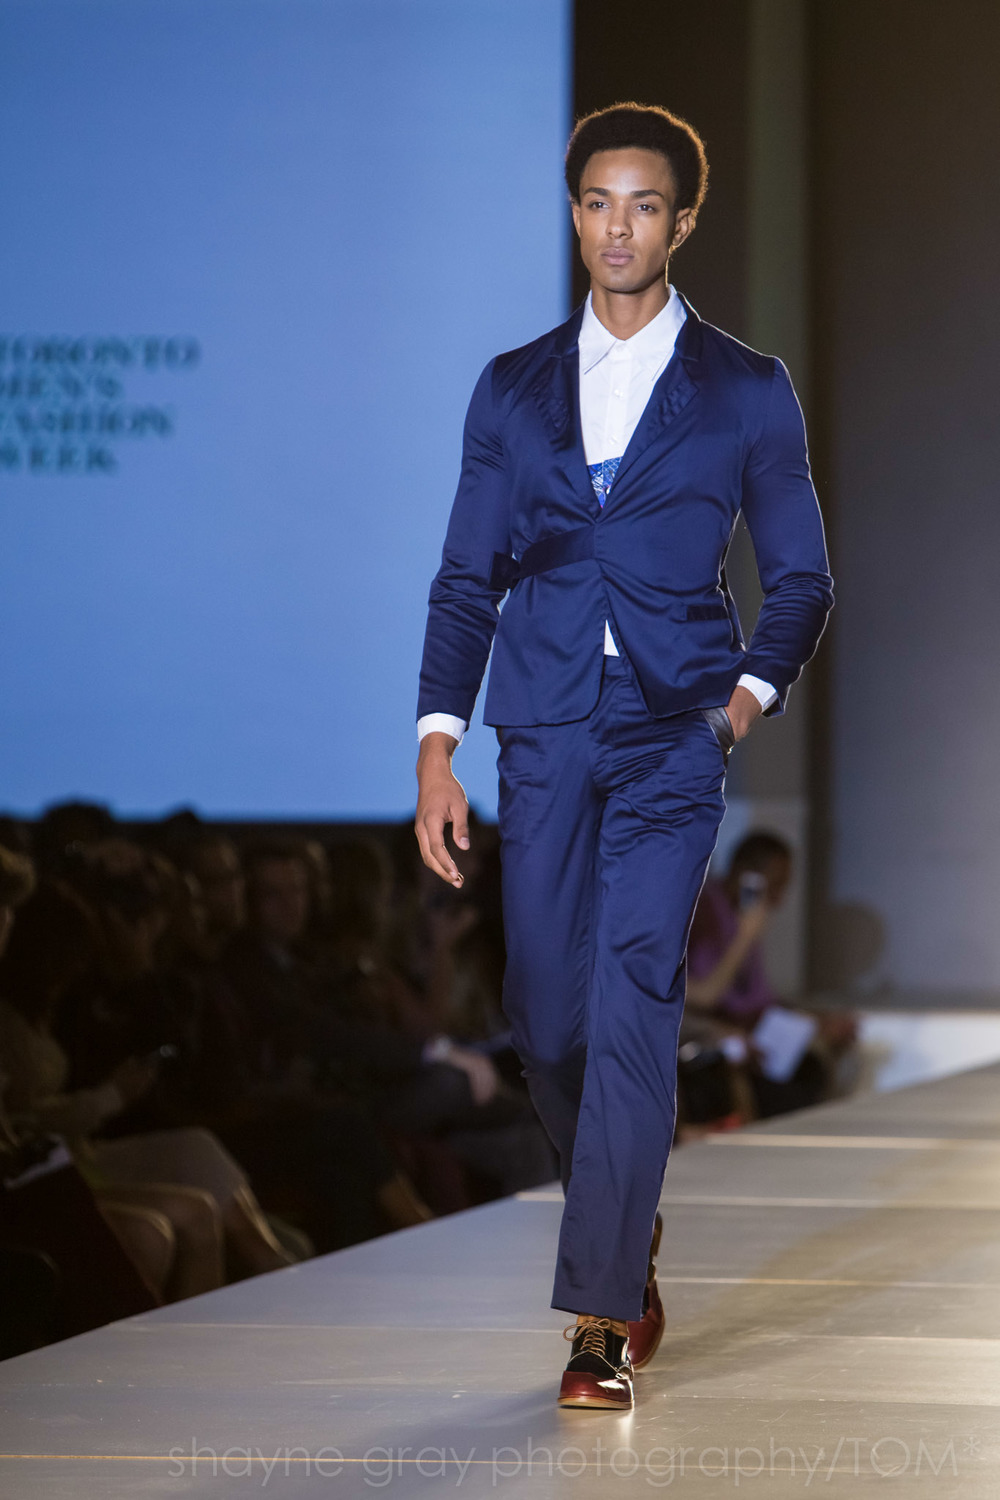 Shayne-Gray-Toronto-men's-fashion_week-TOM-paul-nathaphol-7959.jpg